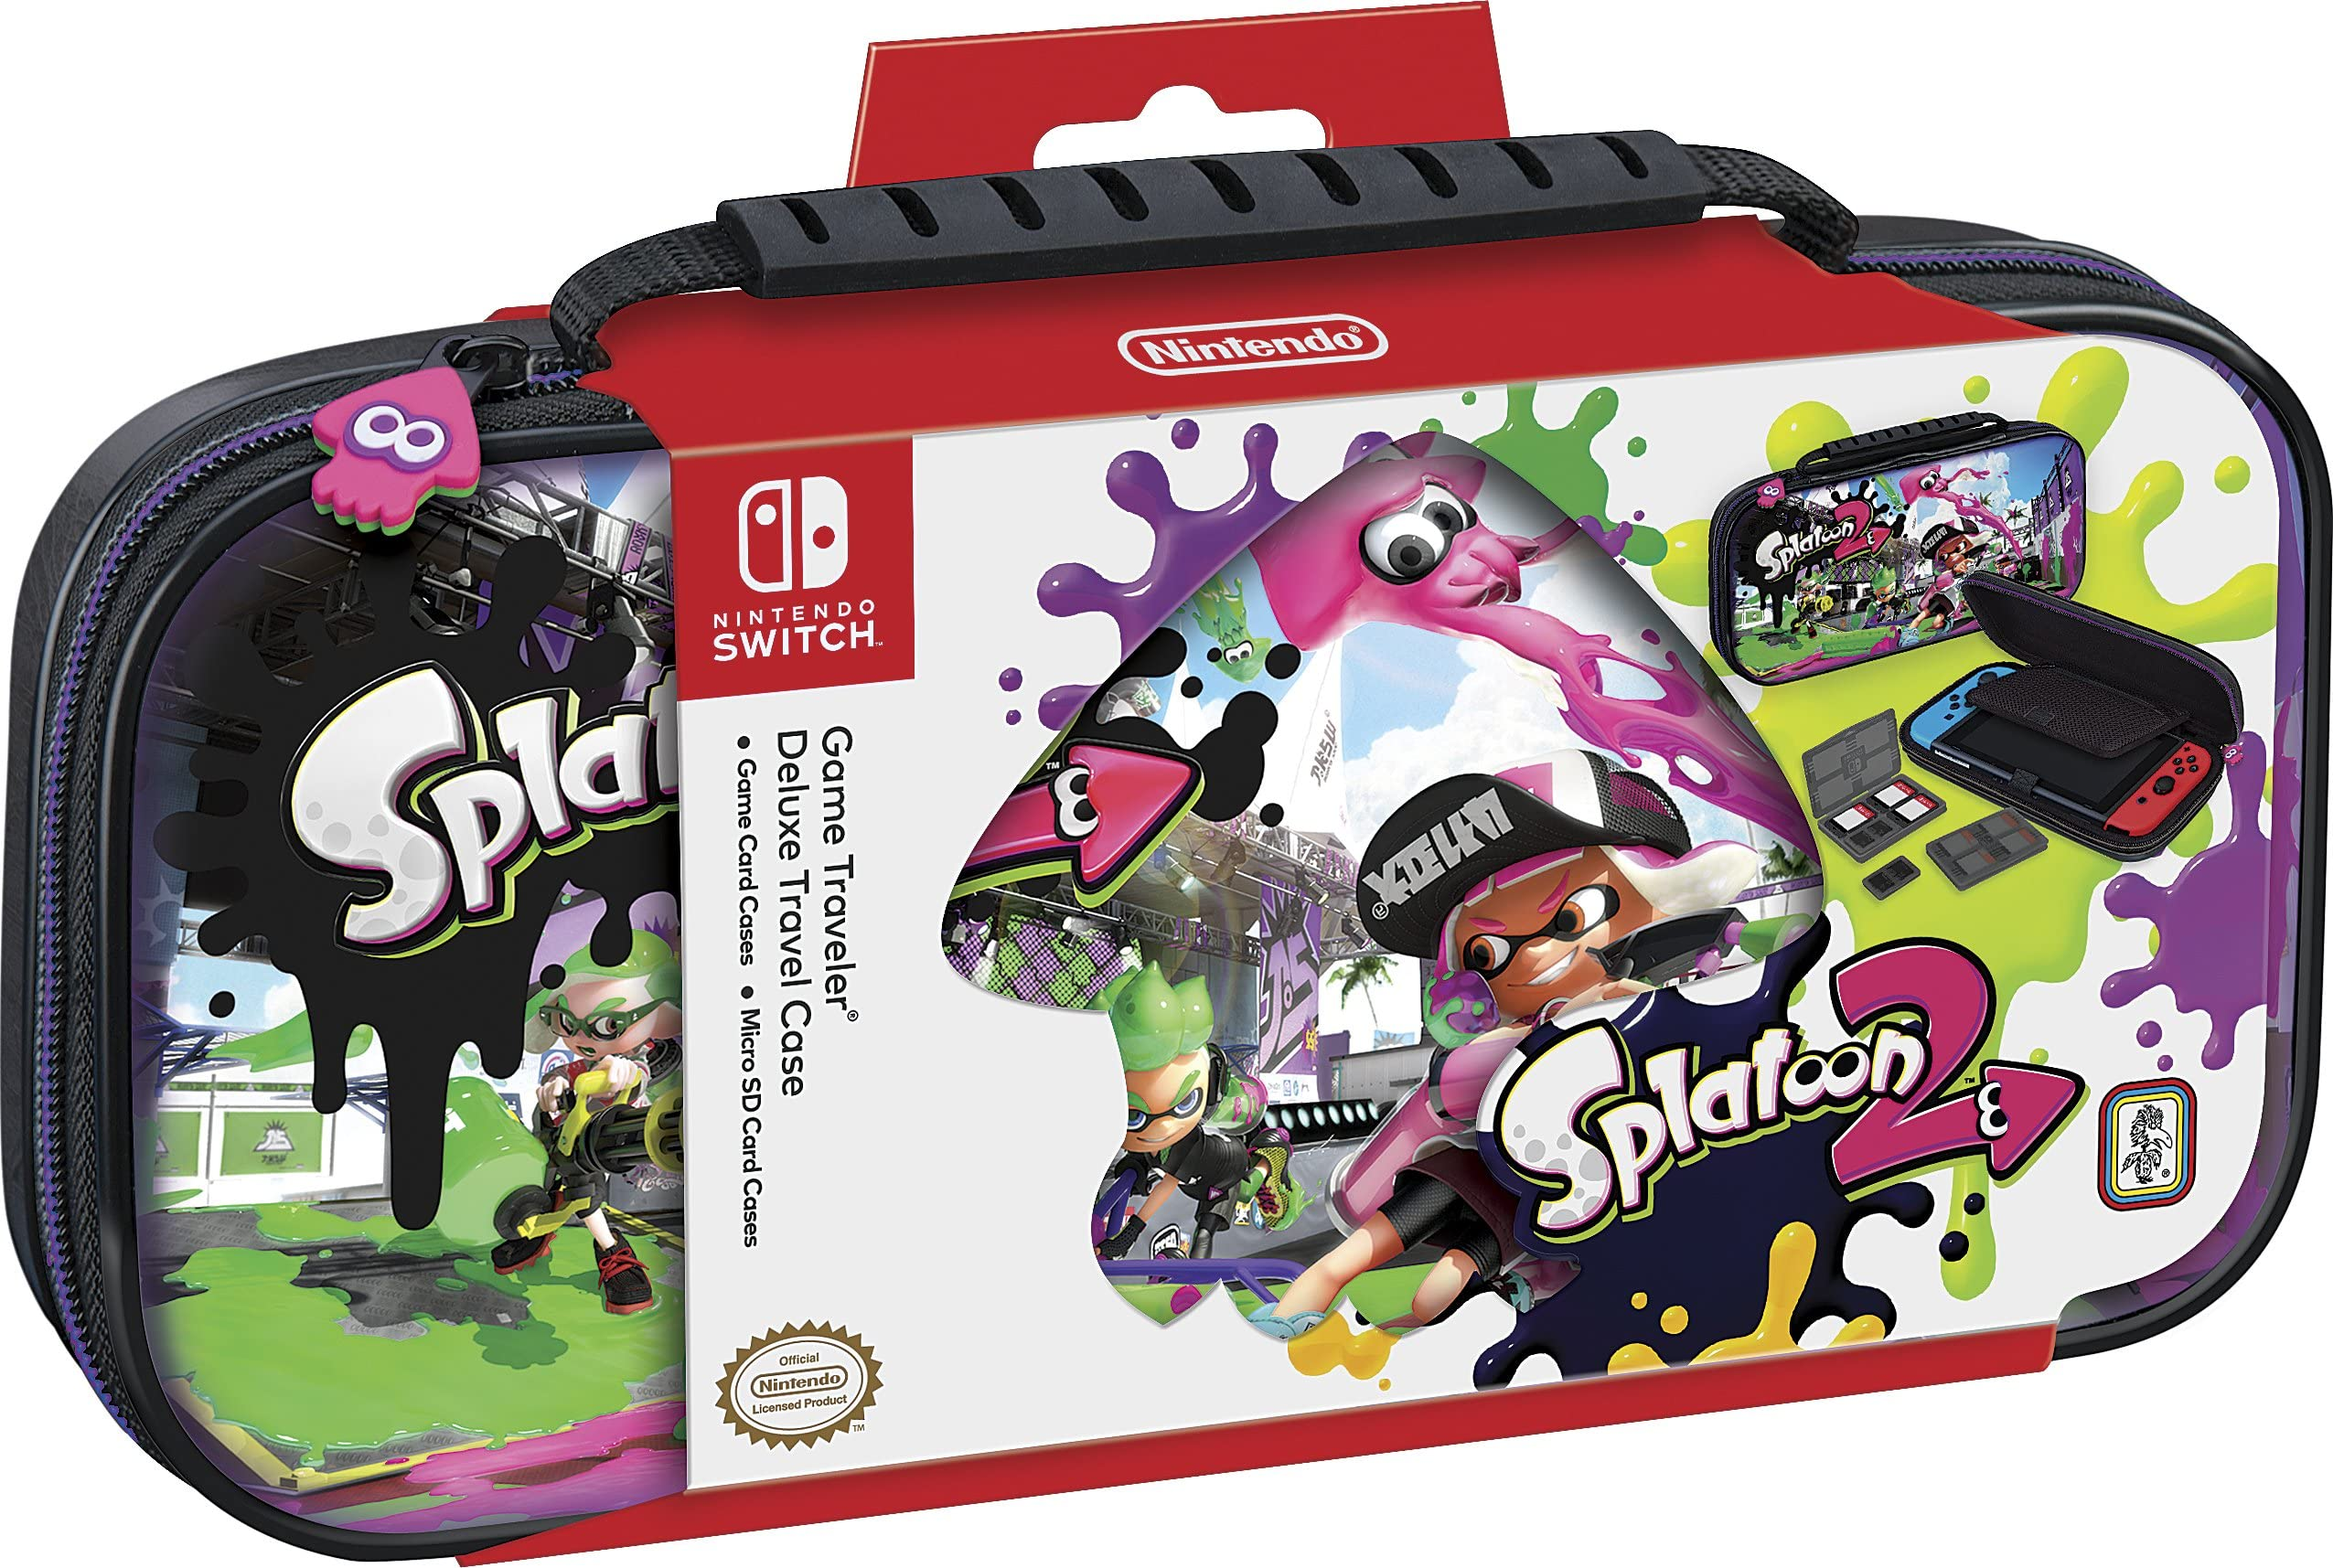 Nintendo Switch Deluxe Splatoon 2 Travel Case, Premium Hard Case Made With Pu Leather, Original Splatoon Art. Secure Fit For Switch, Designed To Protect Switch's Analog Sticks, Plus 2 Multi Game Cases by Rds Industries, Inc